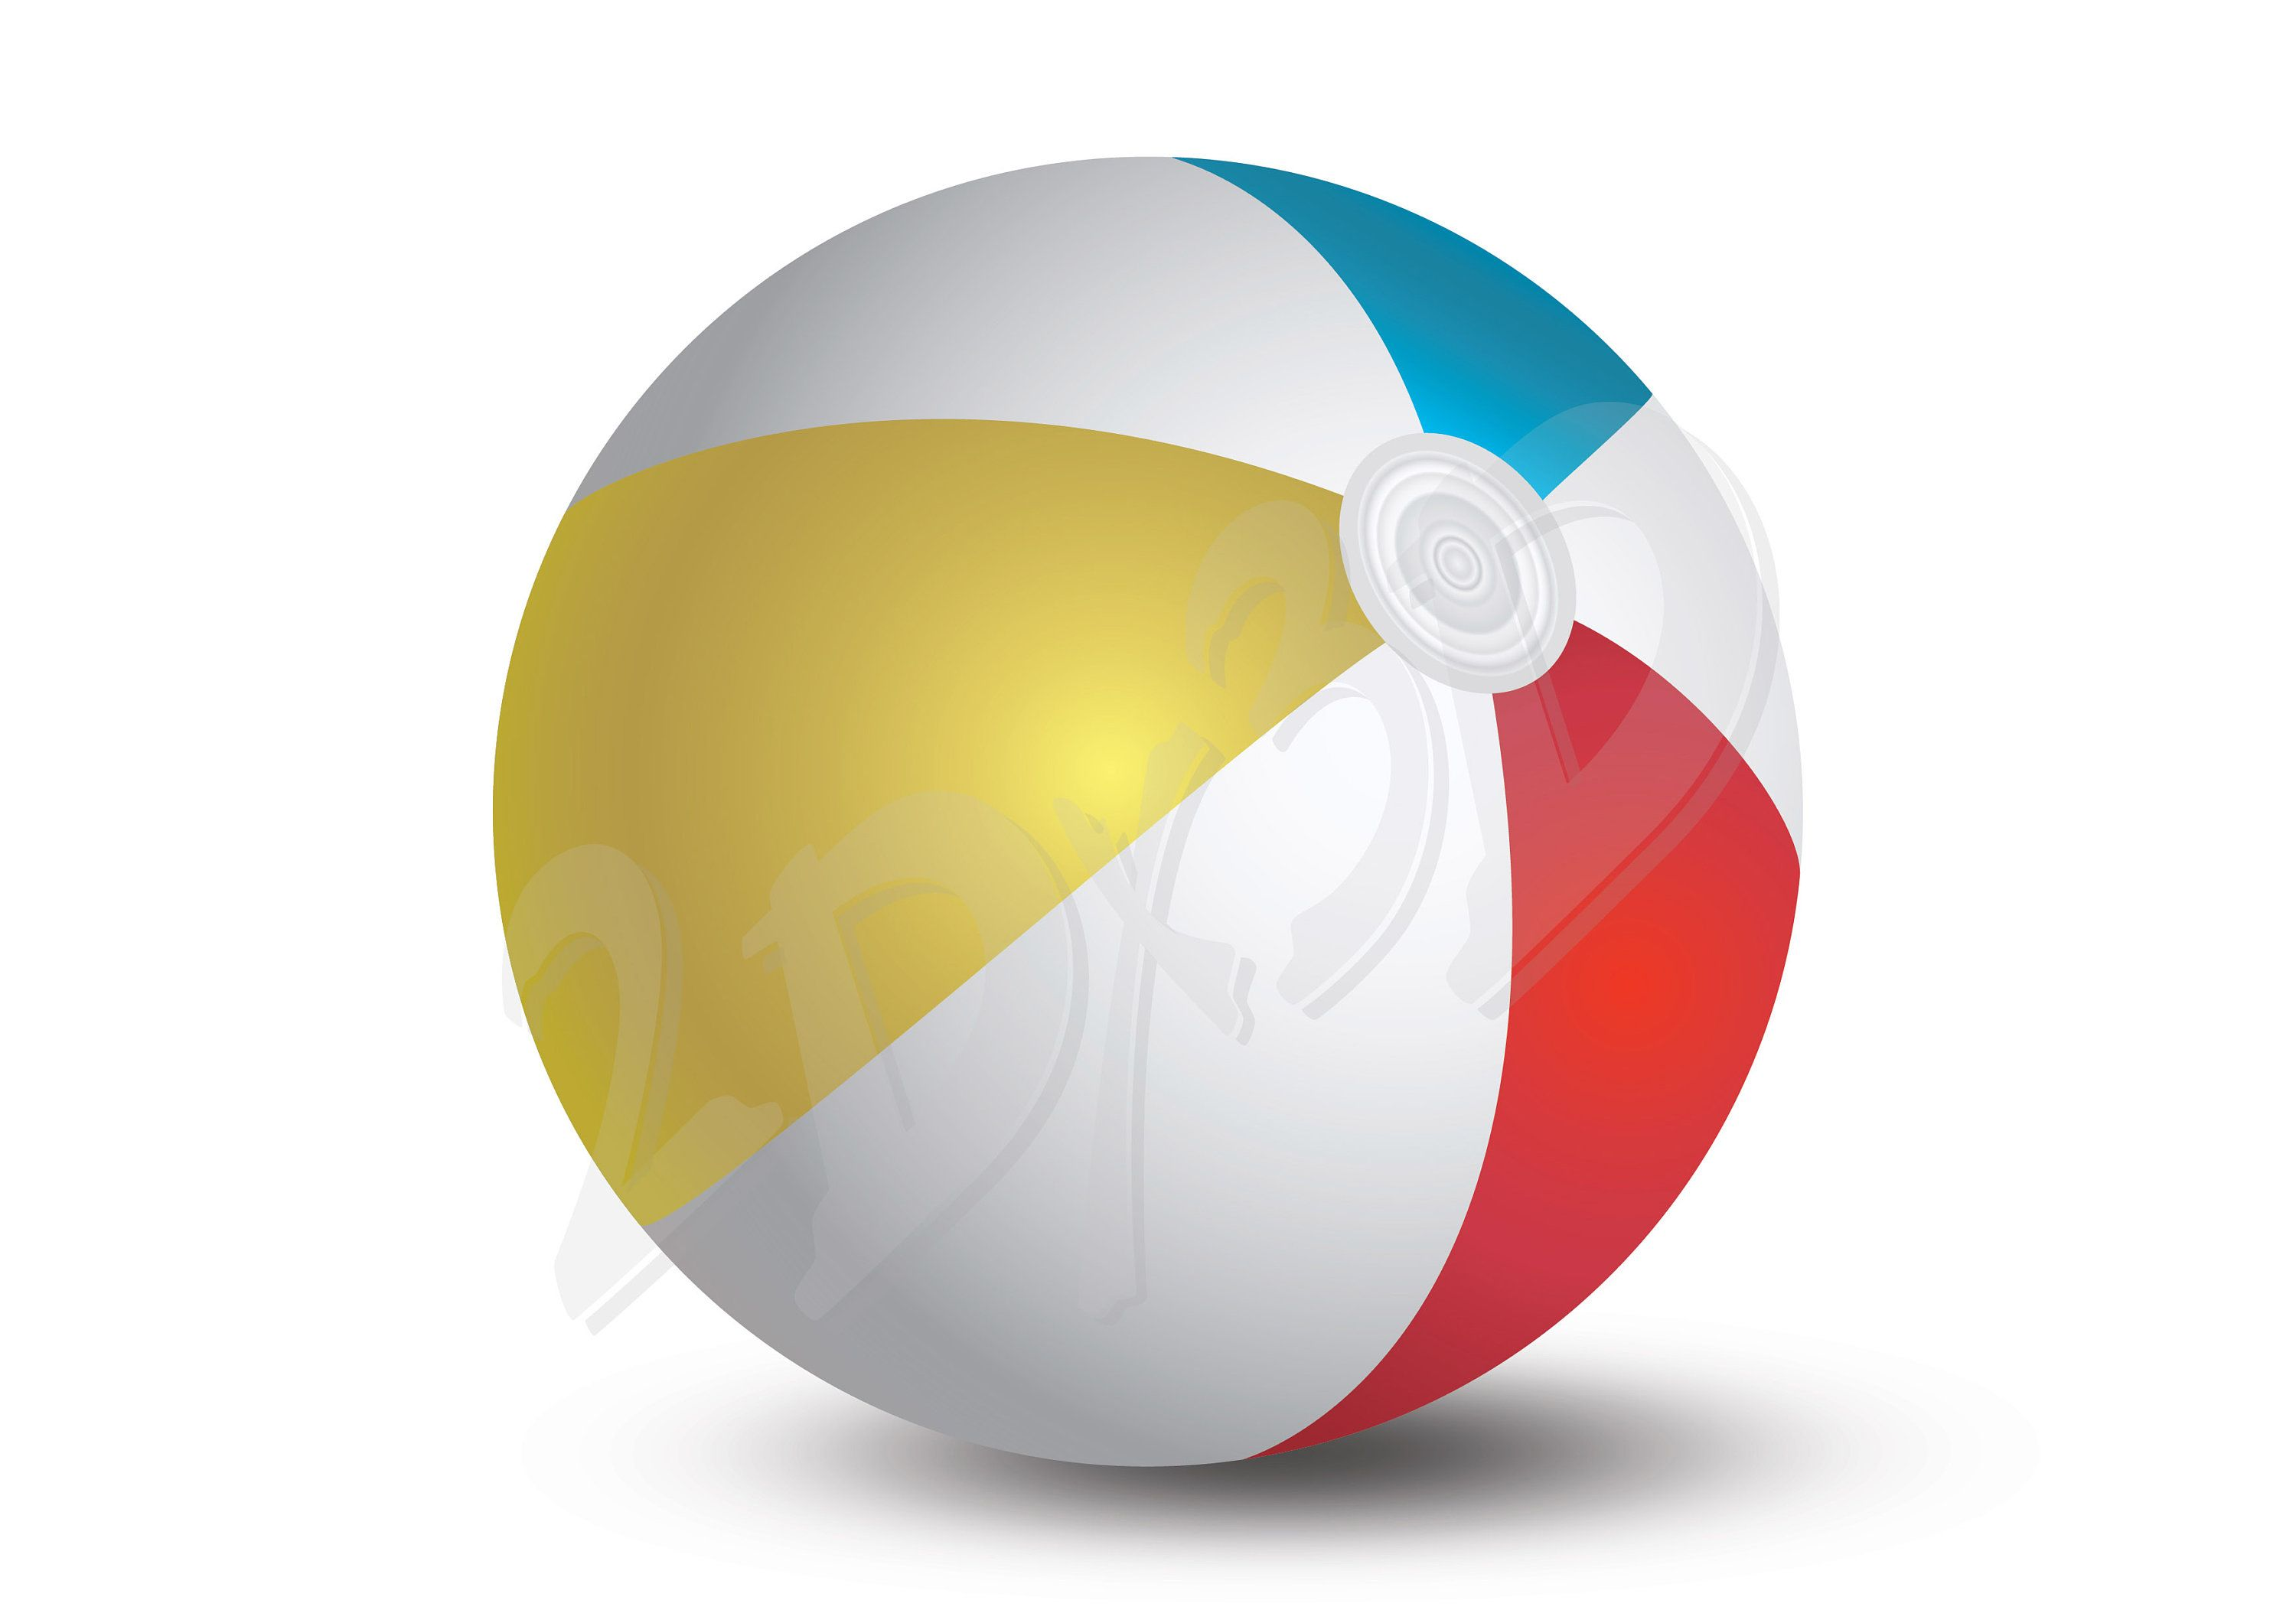 Vector Beach Ball Download Digital Image Graphical Image Ai Eps Png Pdf Svg Jpg Racket Sport Discount Coupon Coupon Design Digital Image Beach Ball